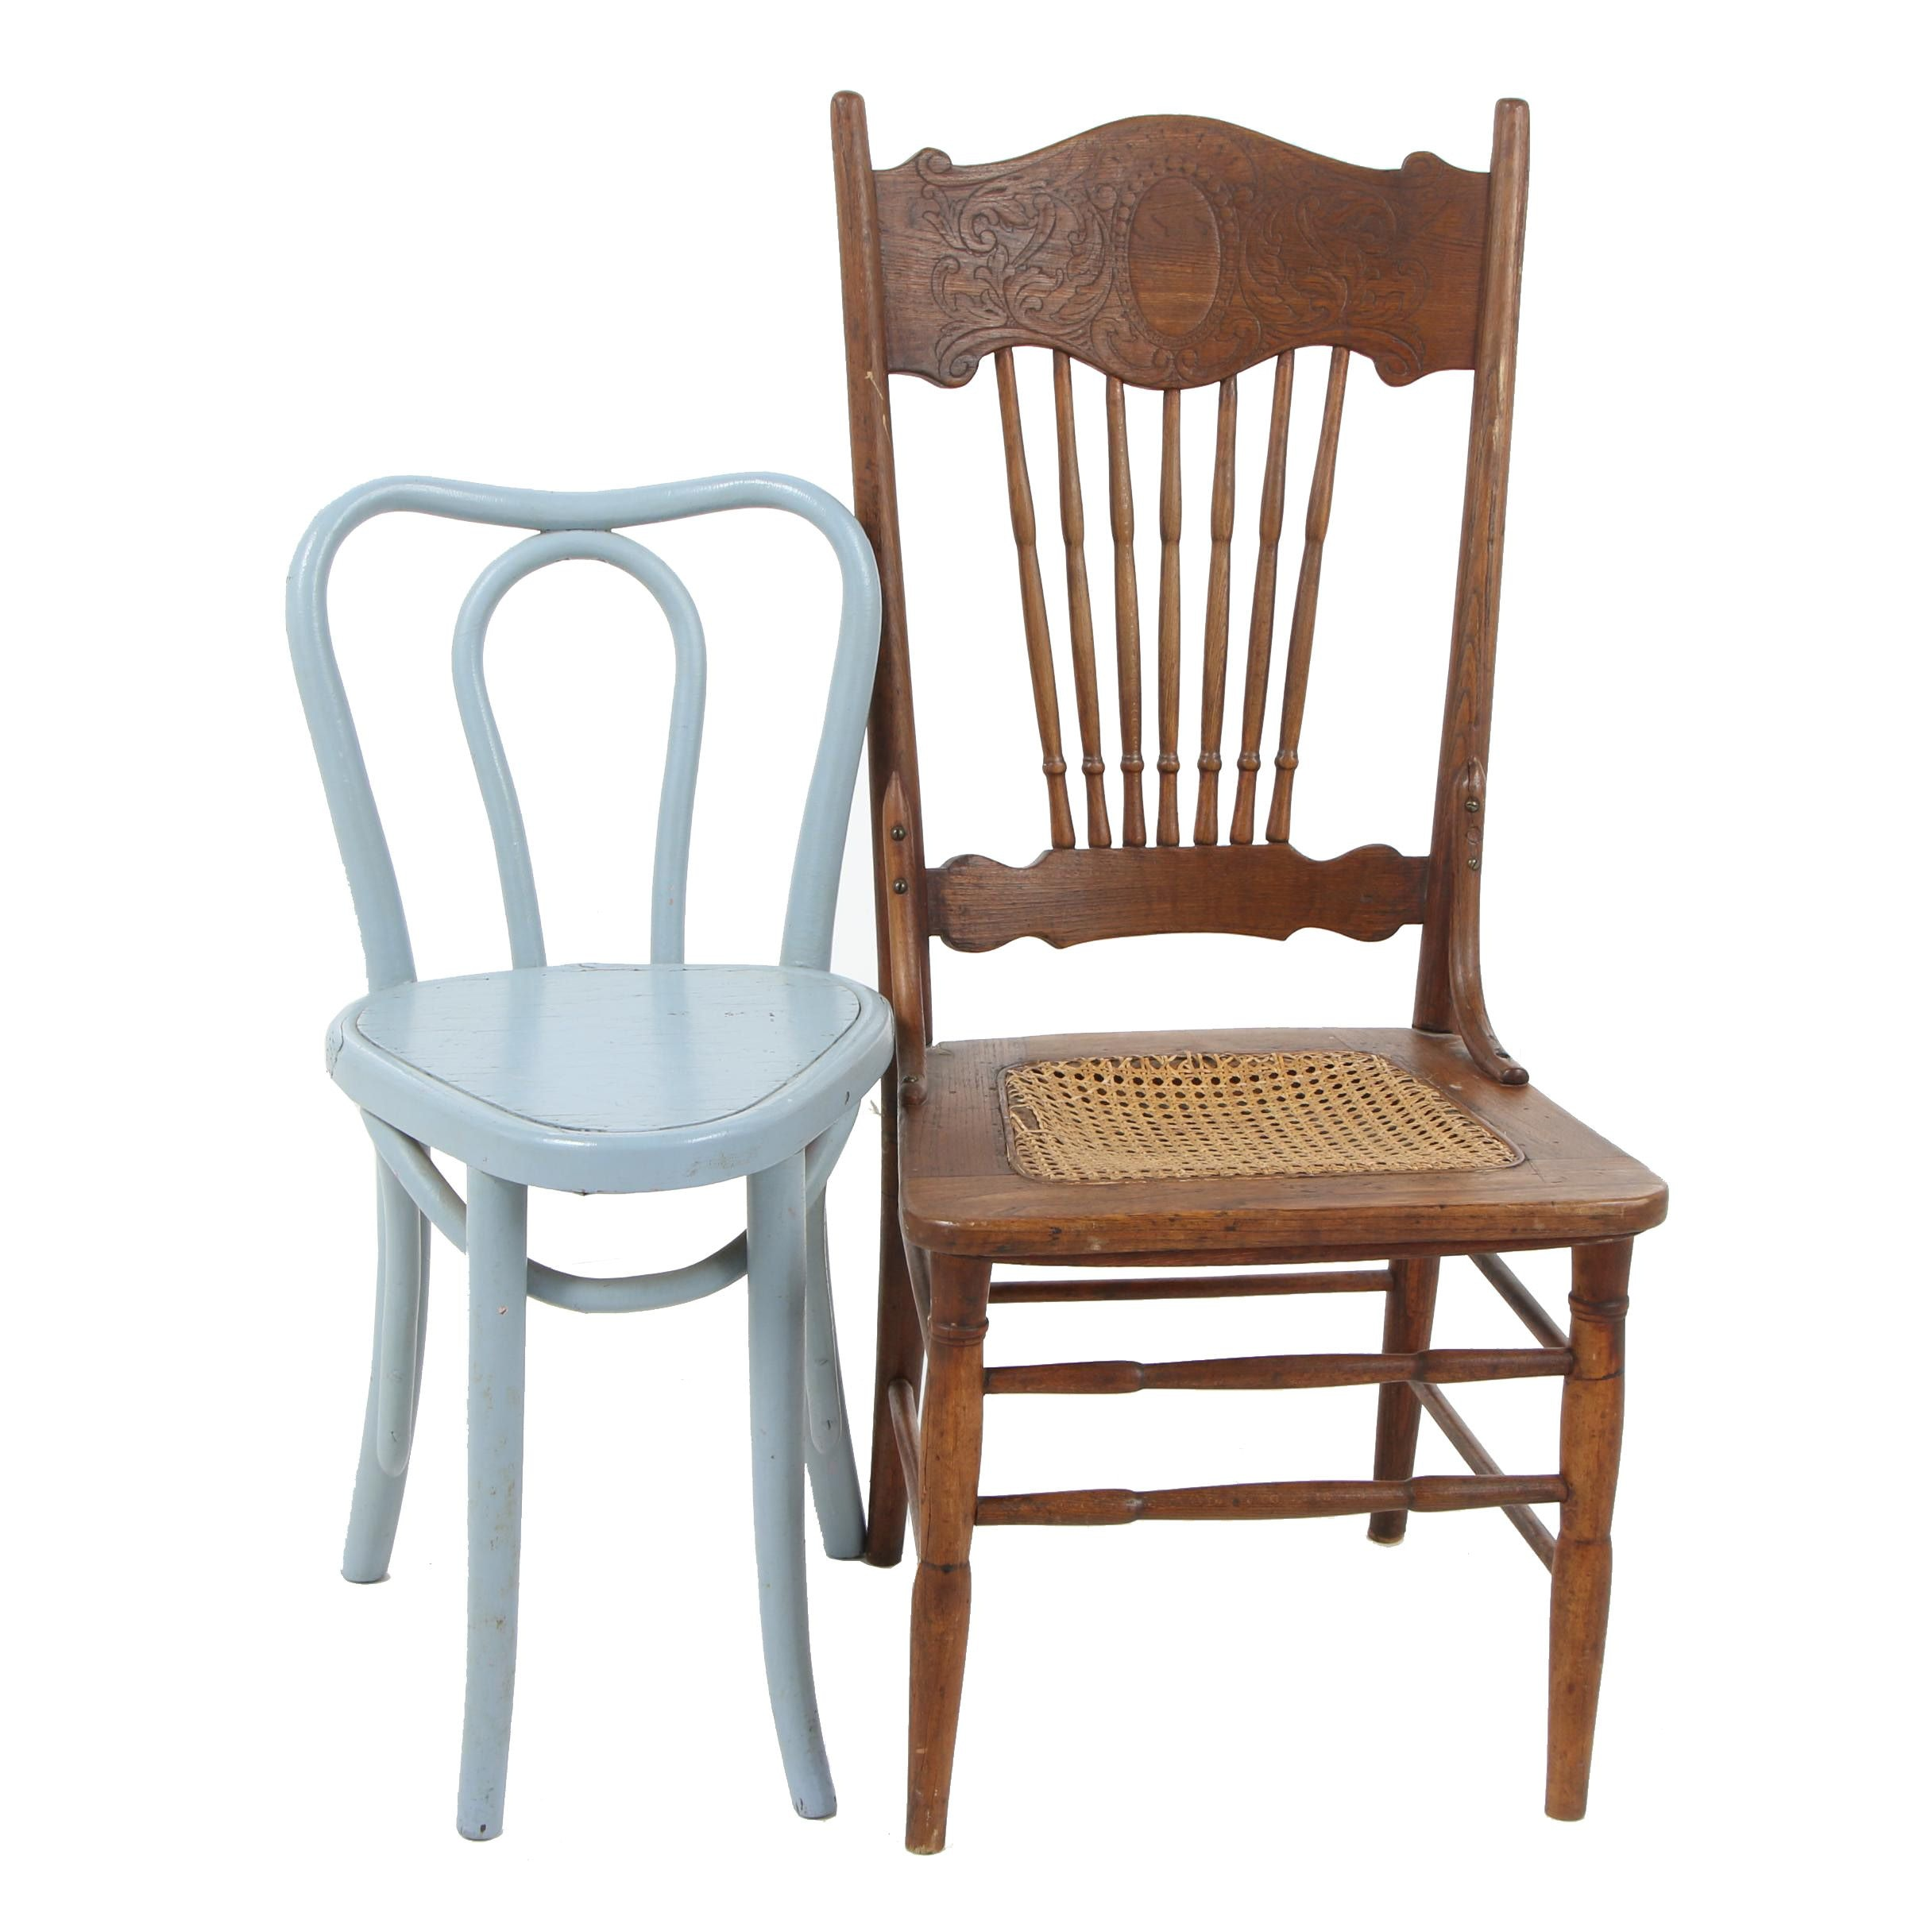 Pressed Back Cane Seat Oak Chair with Other Painted Wood Chair